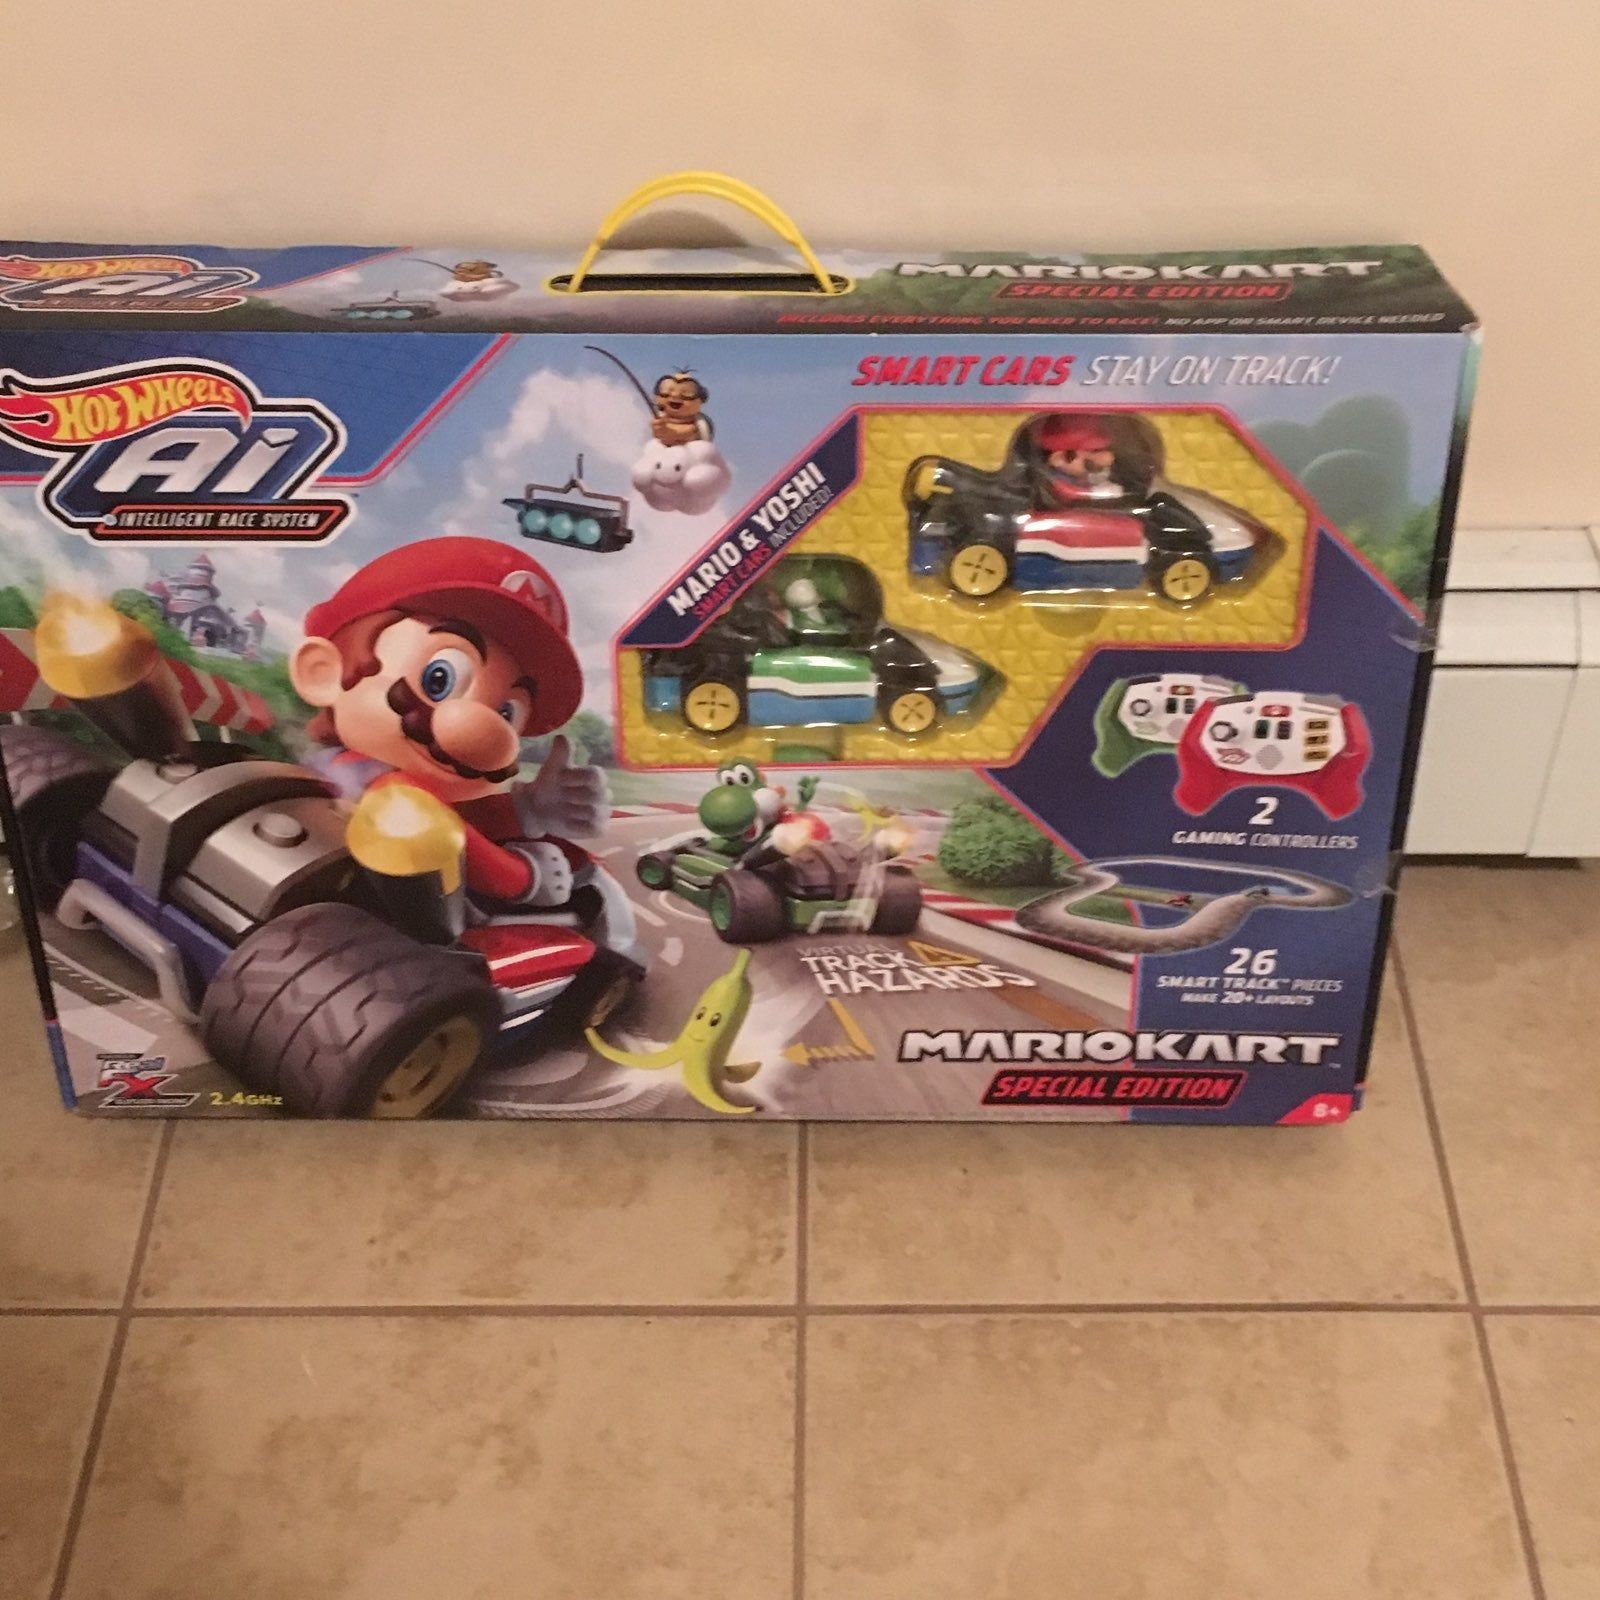 New in box, Hard to find Hot Wheels Mario Kart special